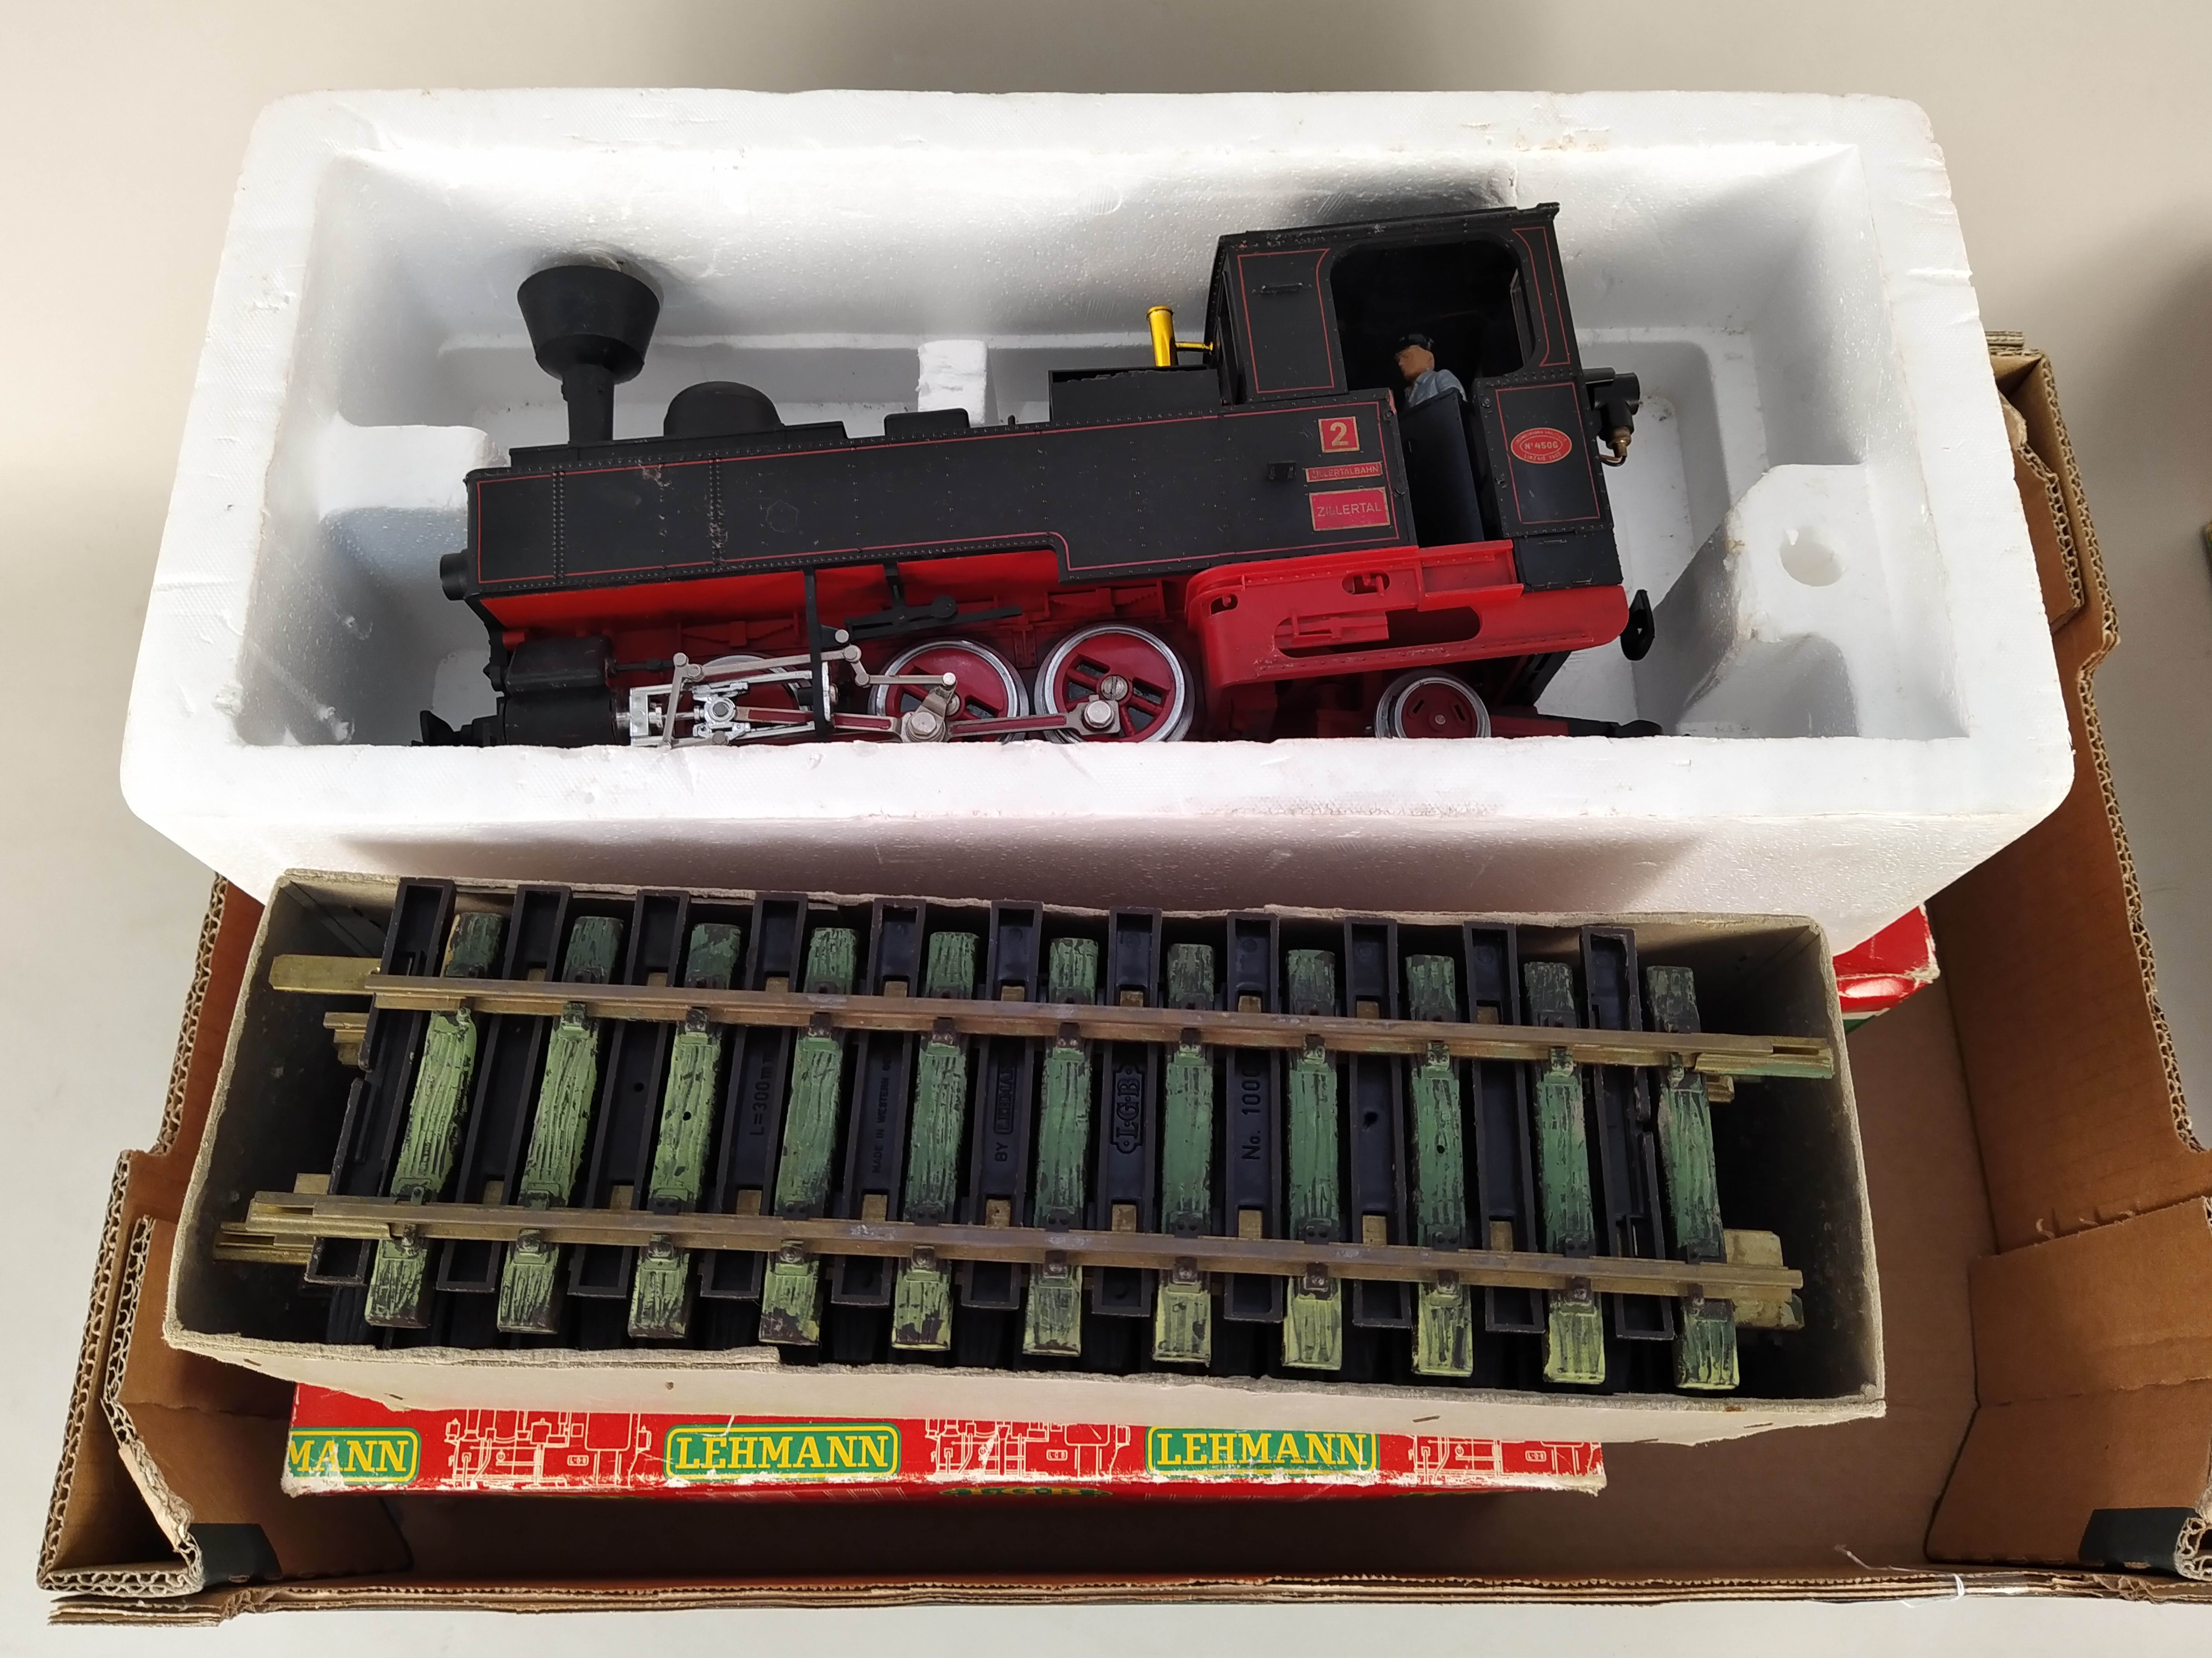 A LGB (Lehmann-Gross-Bahn) 2017D boxed engine, a boxed carriage 3010, an unboxed carriage, - Image 2 of 3